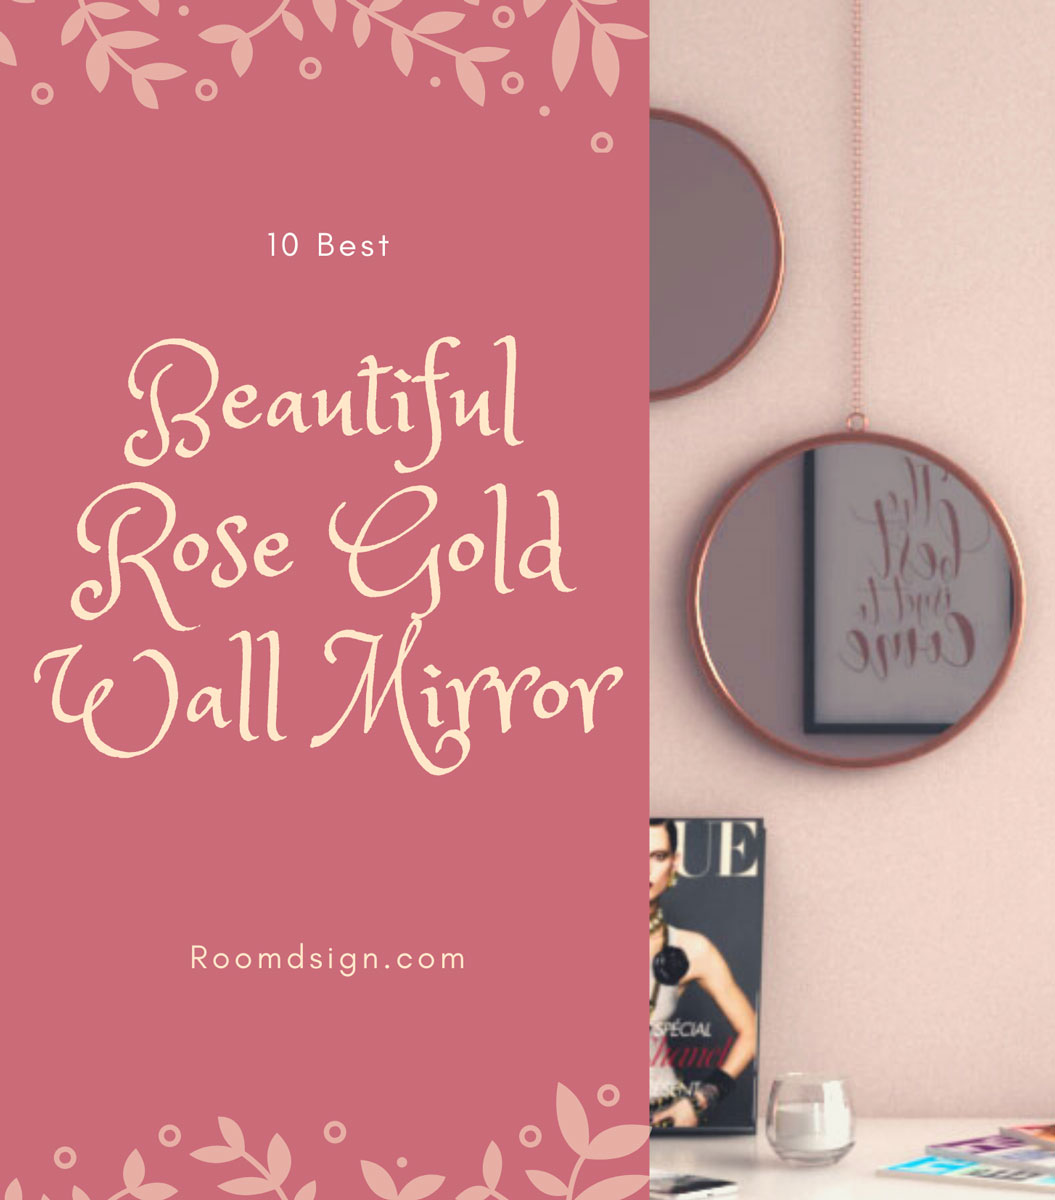 10 beautiful rose gold wall mirror for bedroom